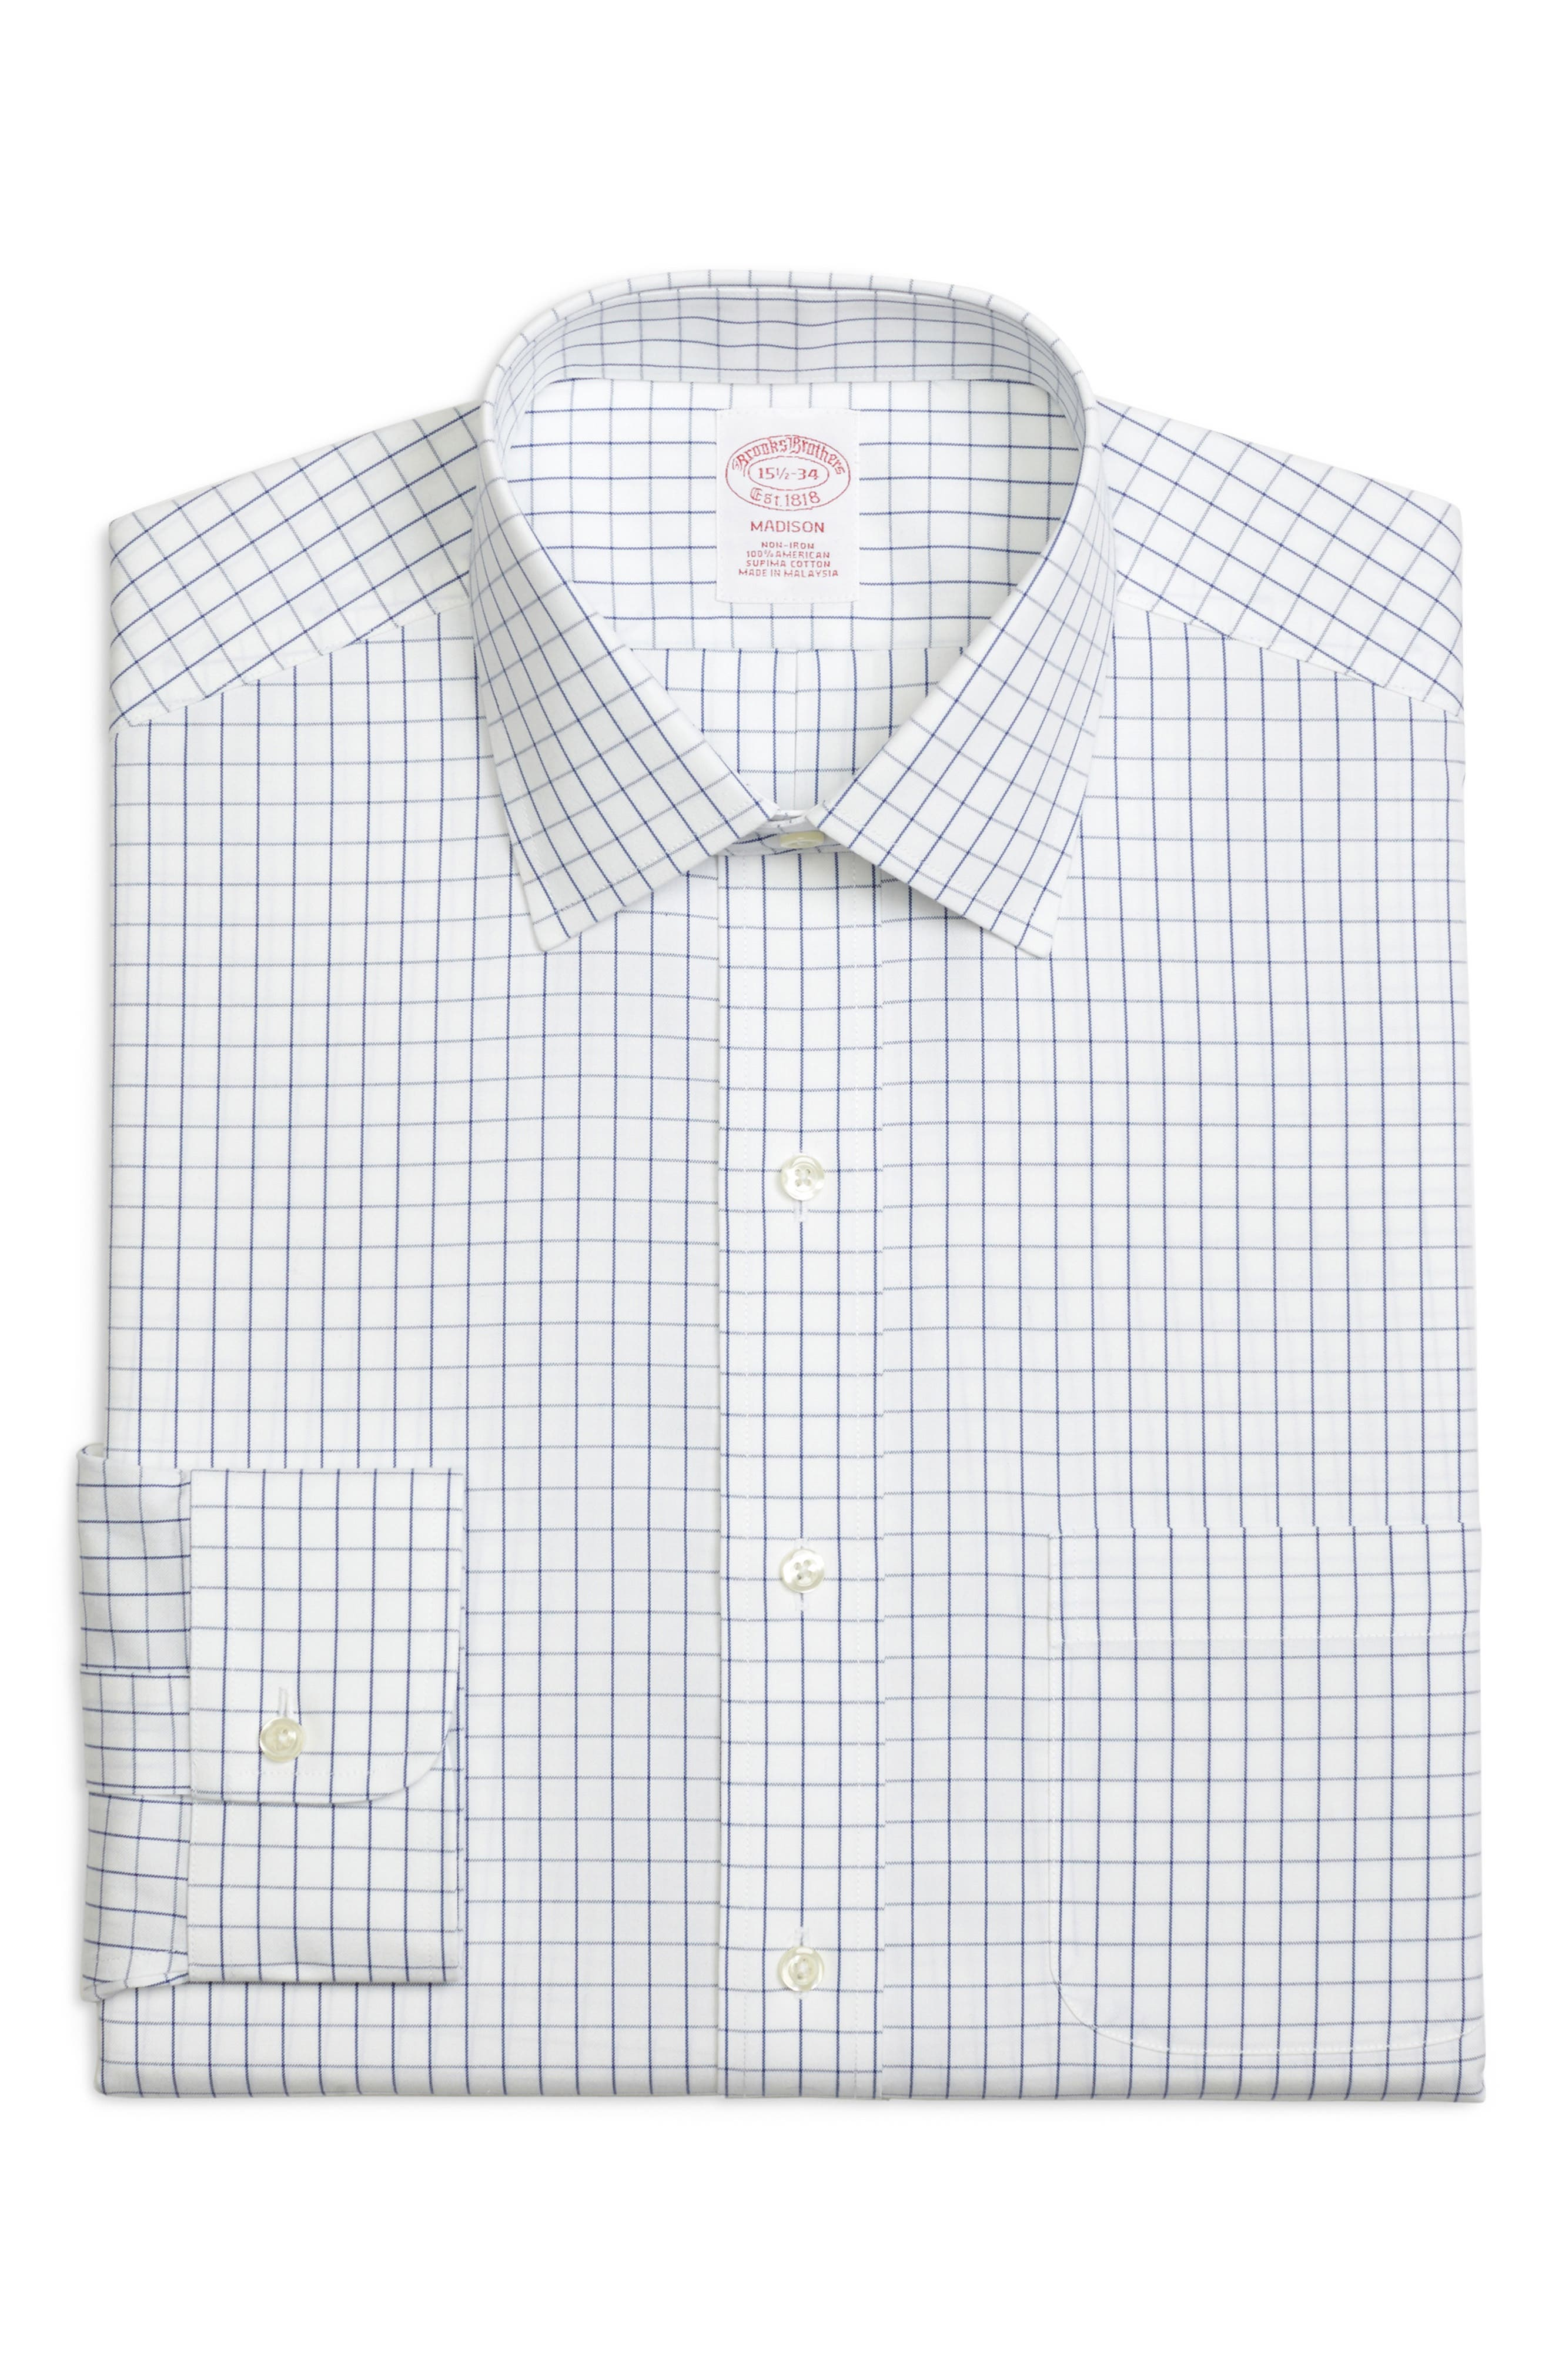 Classic Fit Check Dress Shirt,                             Main thumbnail 1, color,                             BLUE